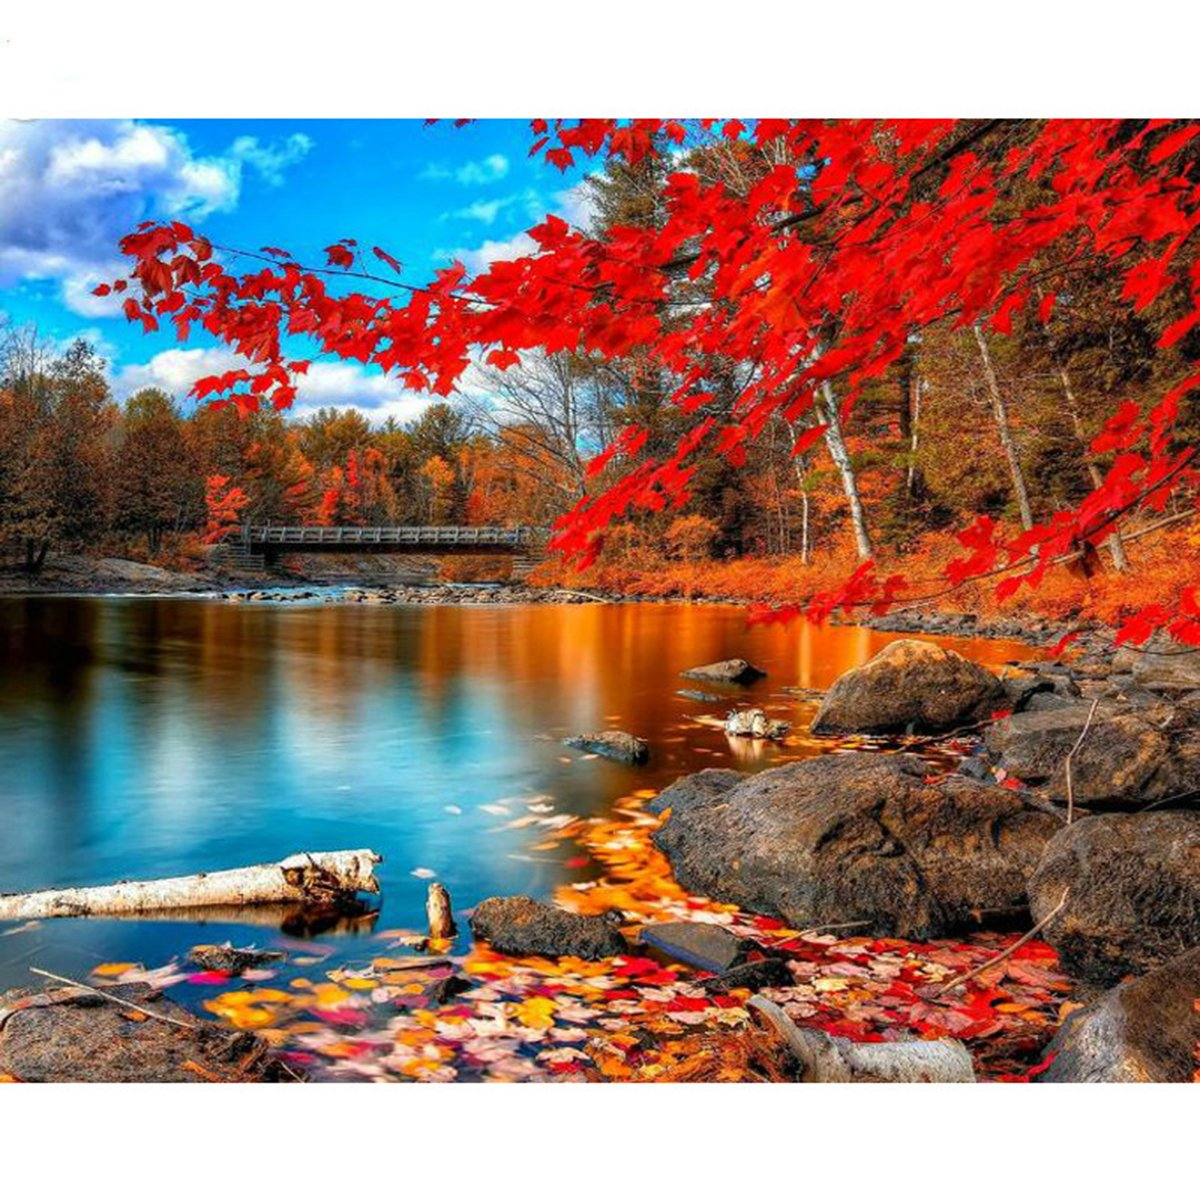 Shukqueen Diy Oil Painting, Adult's Paint by Number Kits, Acrylic Painting Autumn Lake 16X20 Inch (Framed Canvas)